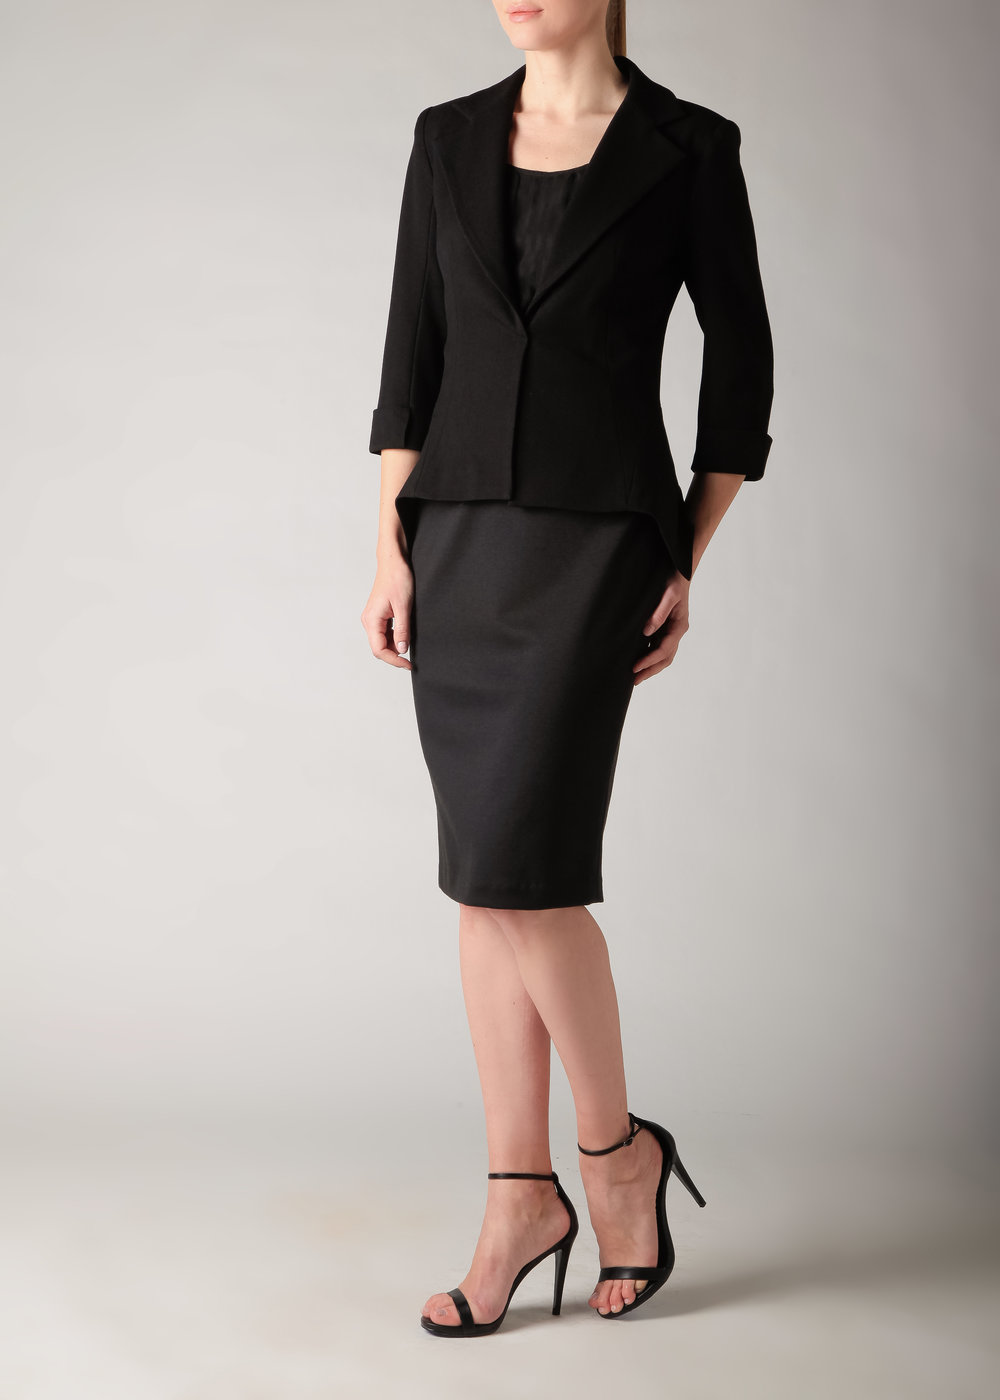 Pair it With - Ponte Pencil Skirt